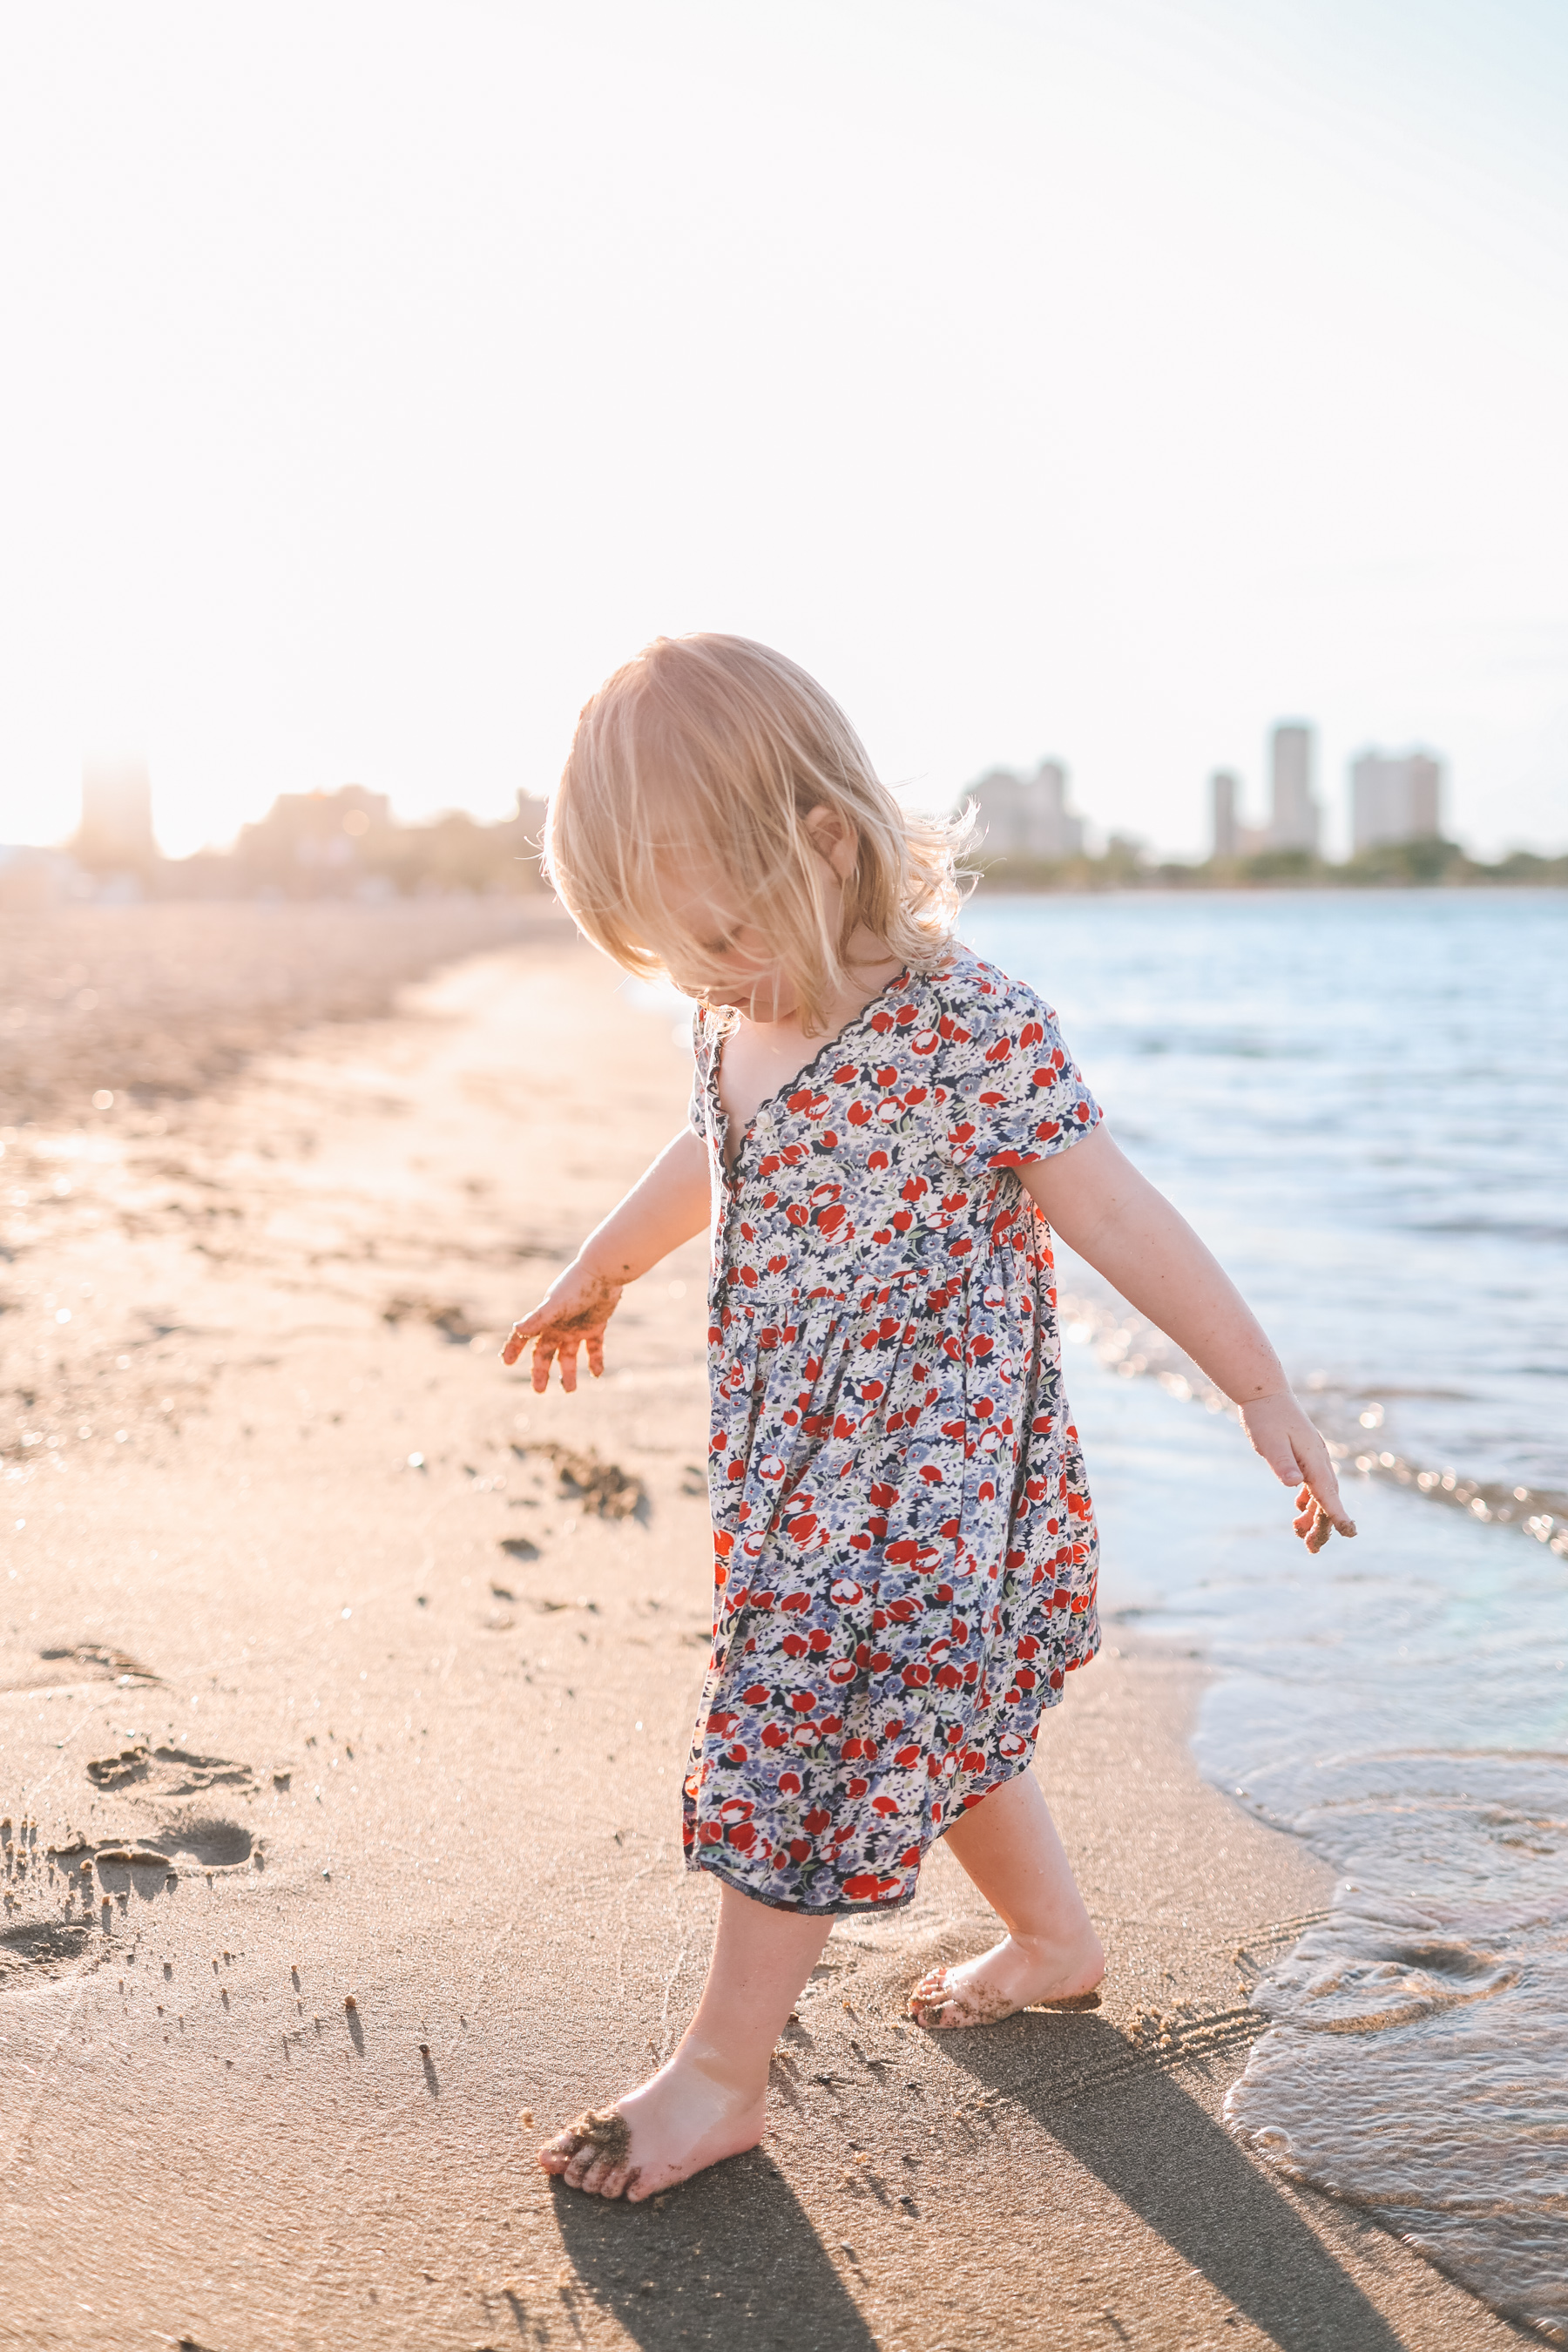 Girl is playing at the beach